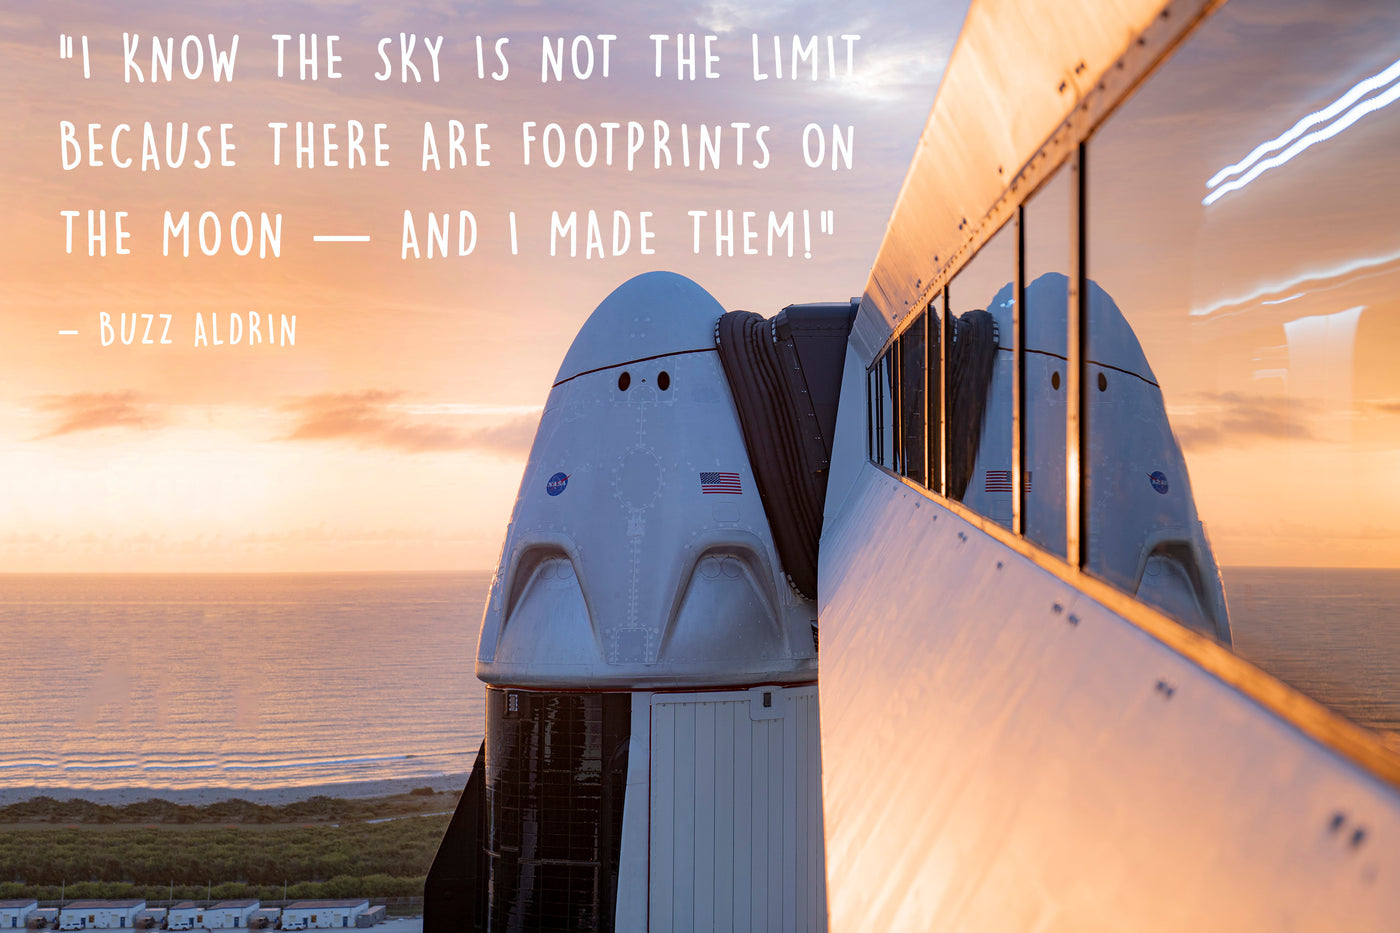 SpaceX dragon capsule sat on NASA Kennedy Space Centre Florida launchpad waiting to launch America. With inspirational quote from NASA apollo astronaut Buzz Aldrin - I know the sky is not the limit because there are footprints on the moon and I made them